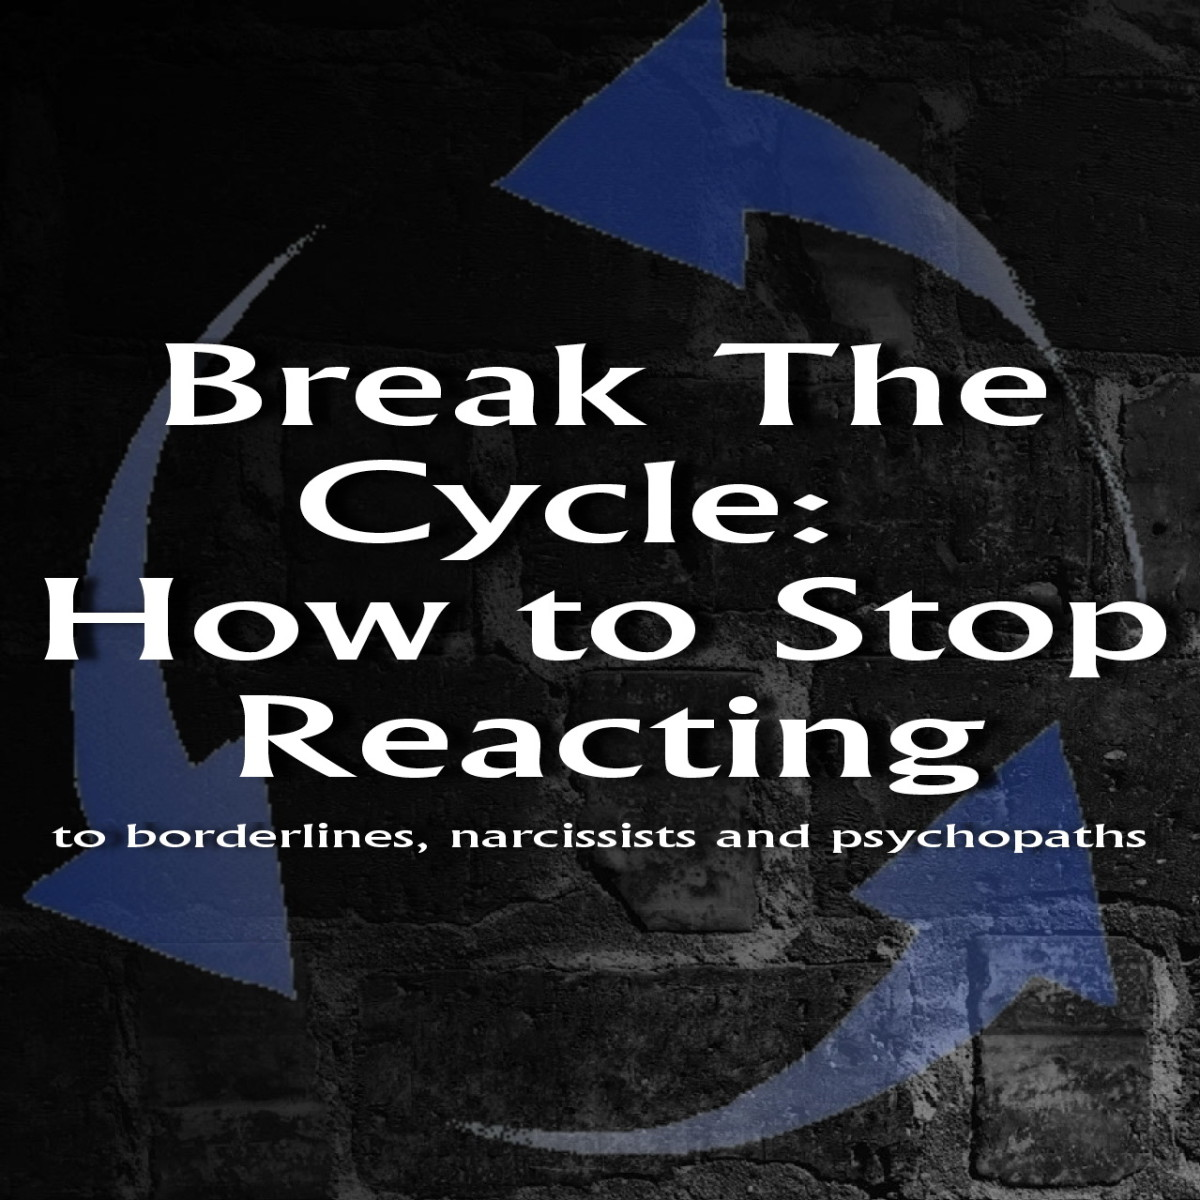 how-to-stop-reacting-break-the-drama-cycle-of-borderlines-narcissists-psychopaths